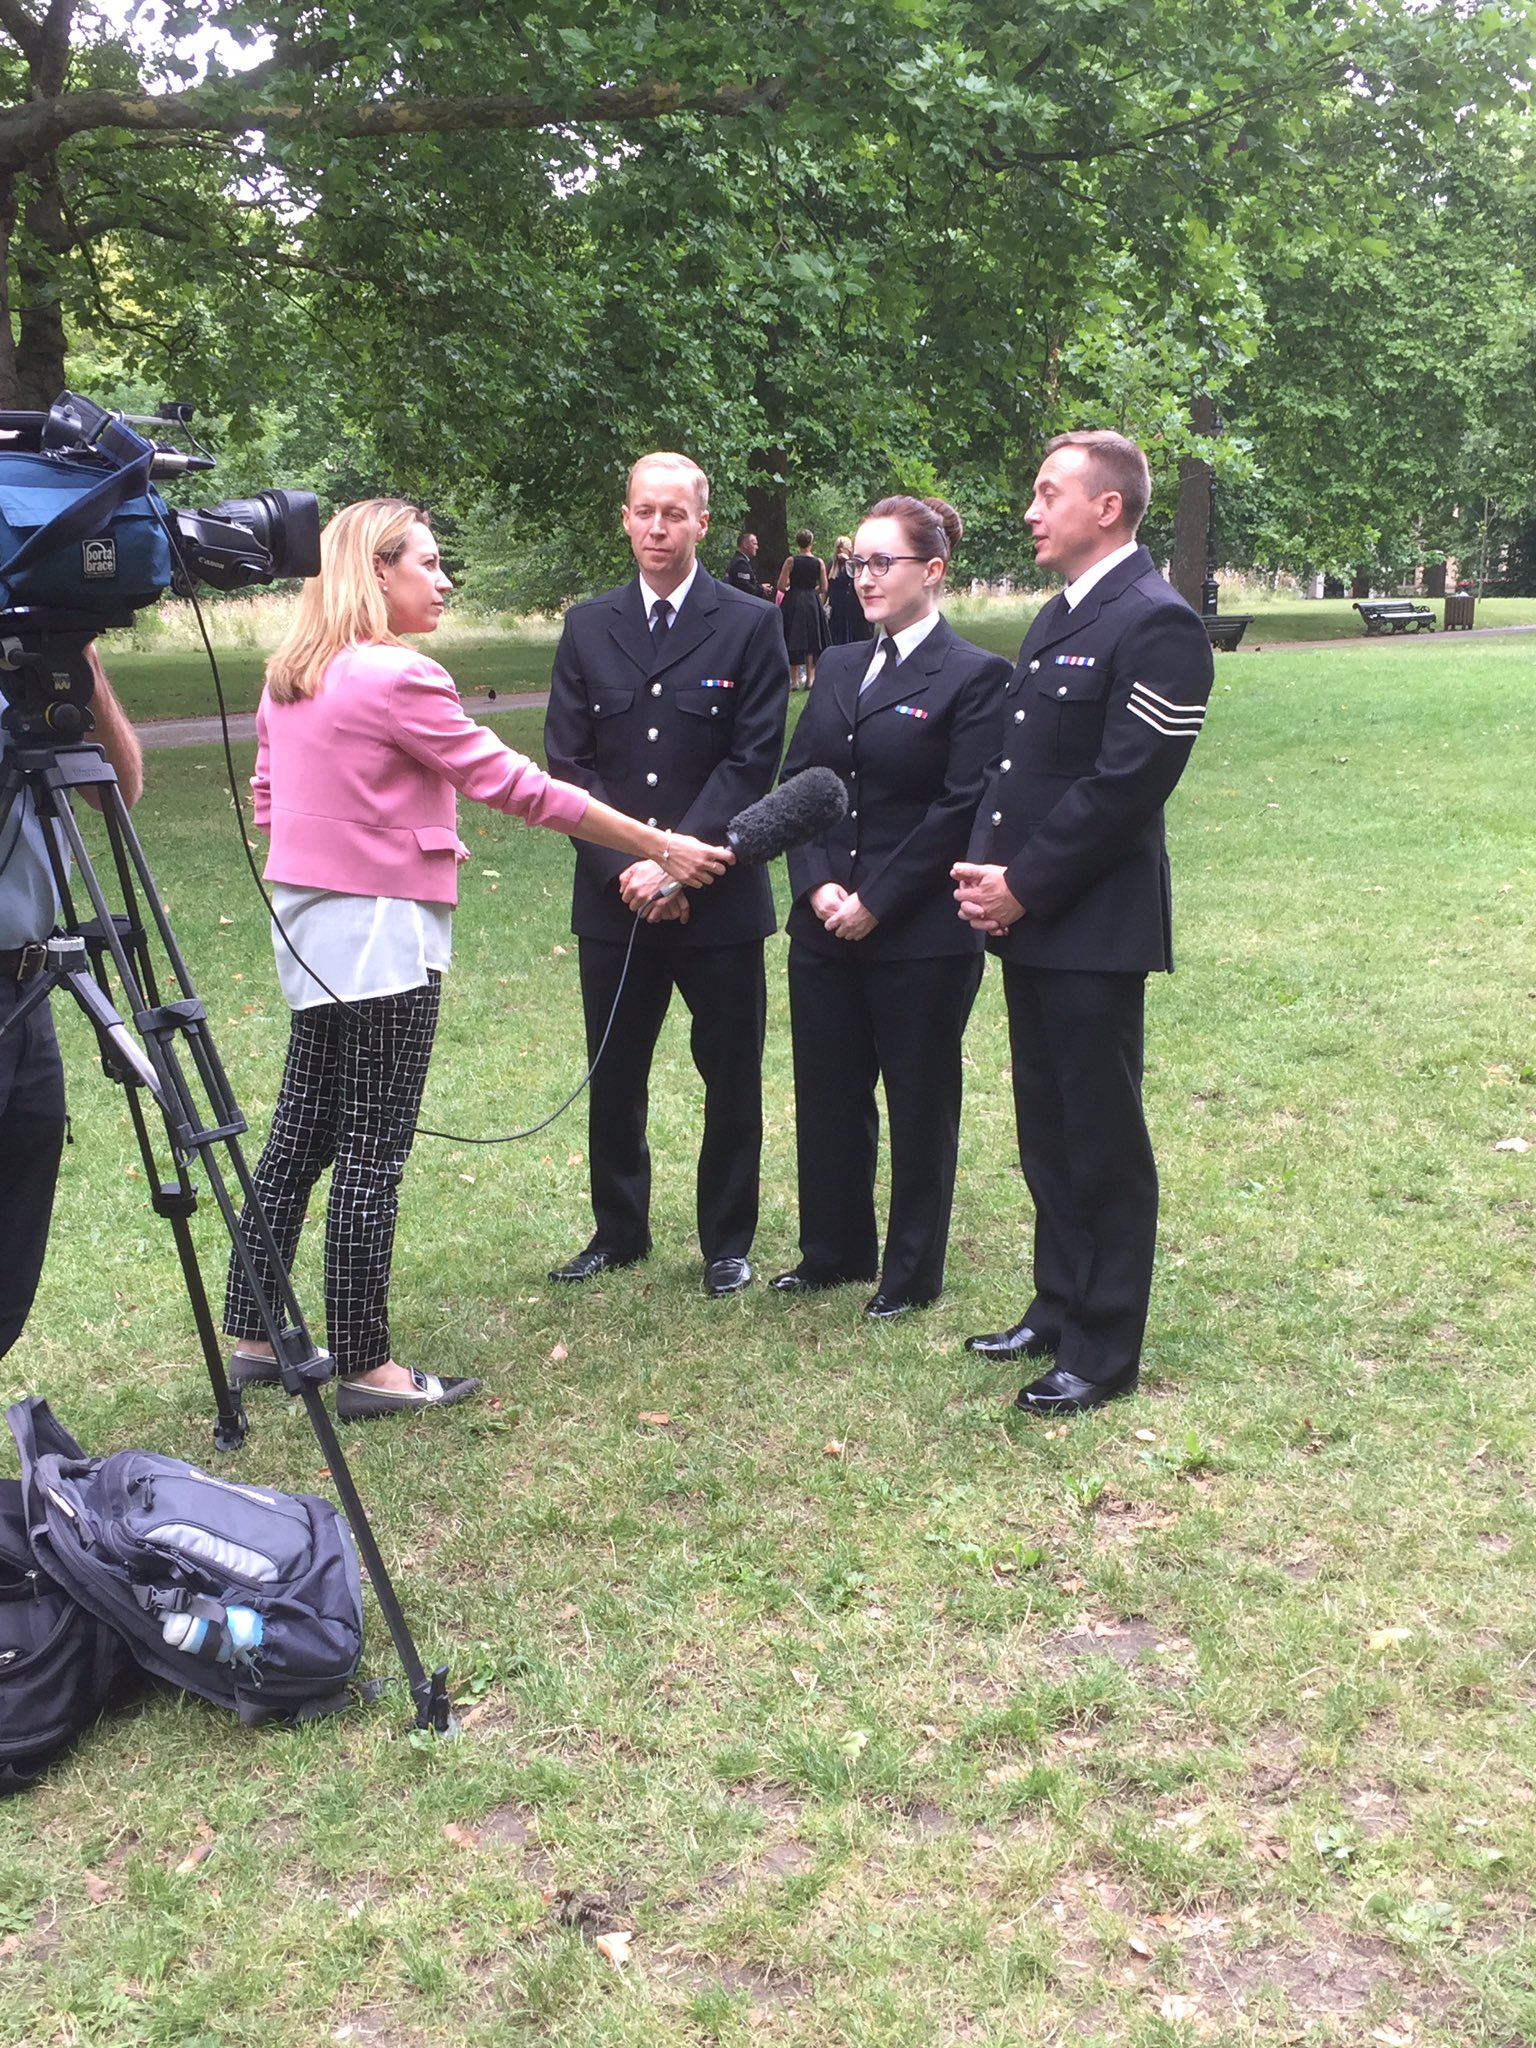 PCs Sarah Currie & Michael Otterson, & Sgt Elliott Richardson from @northumbriapol talk about their #PoliceBravery on @itvnews tonight https://t.co/J2naTD2Xi8